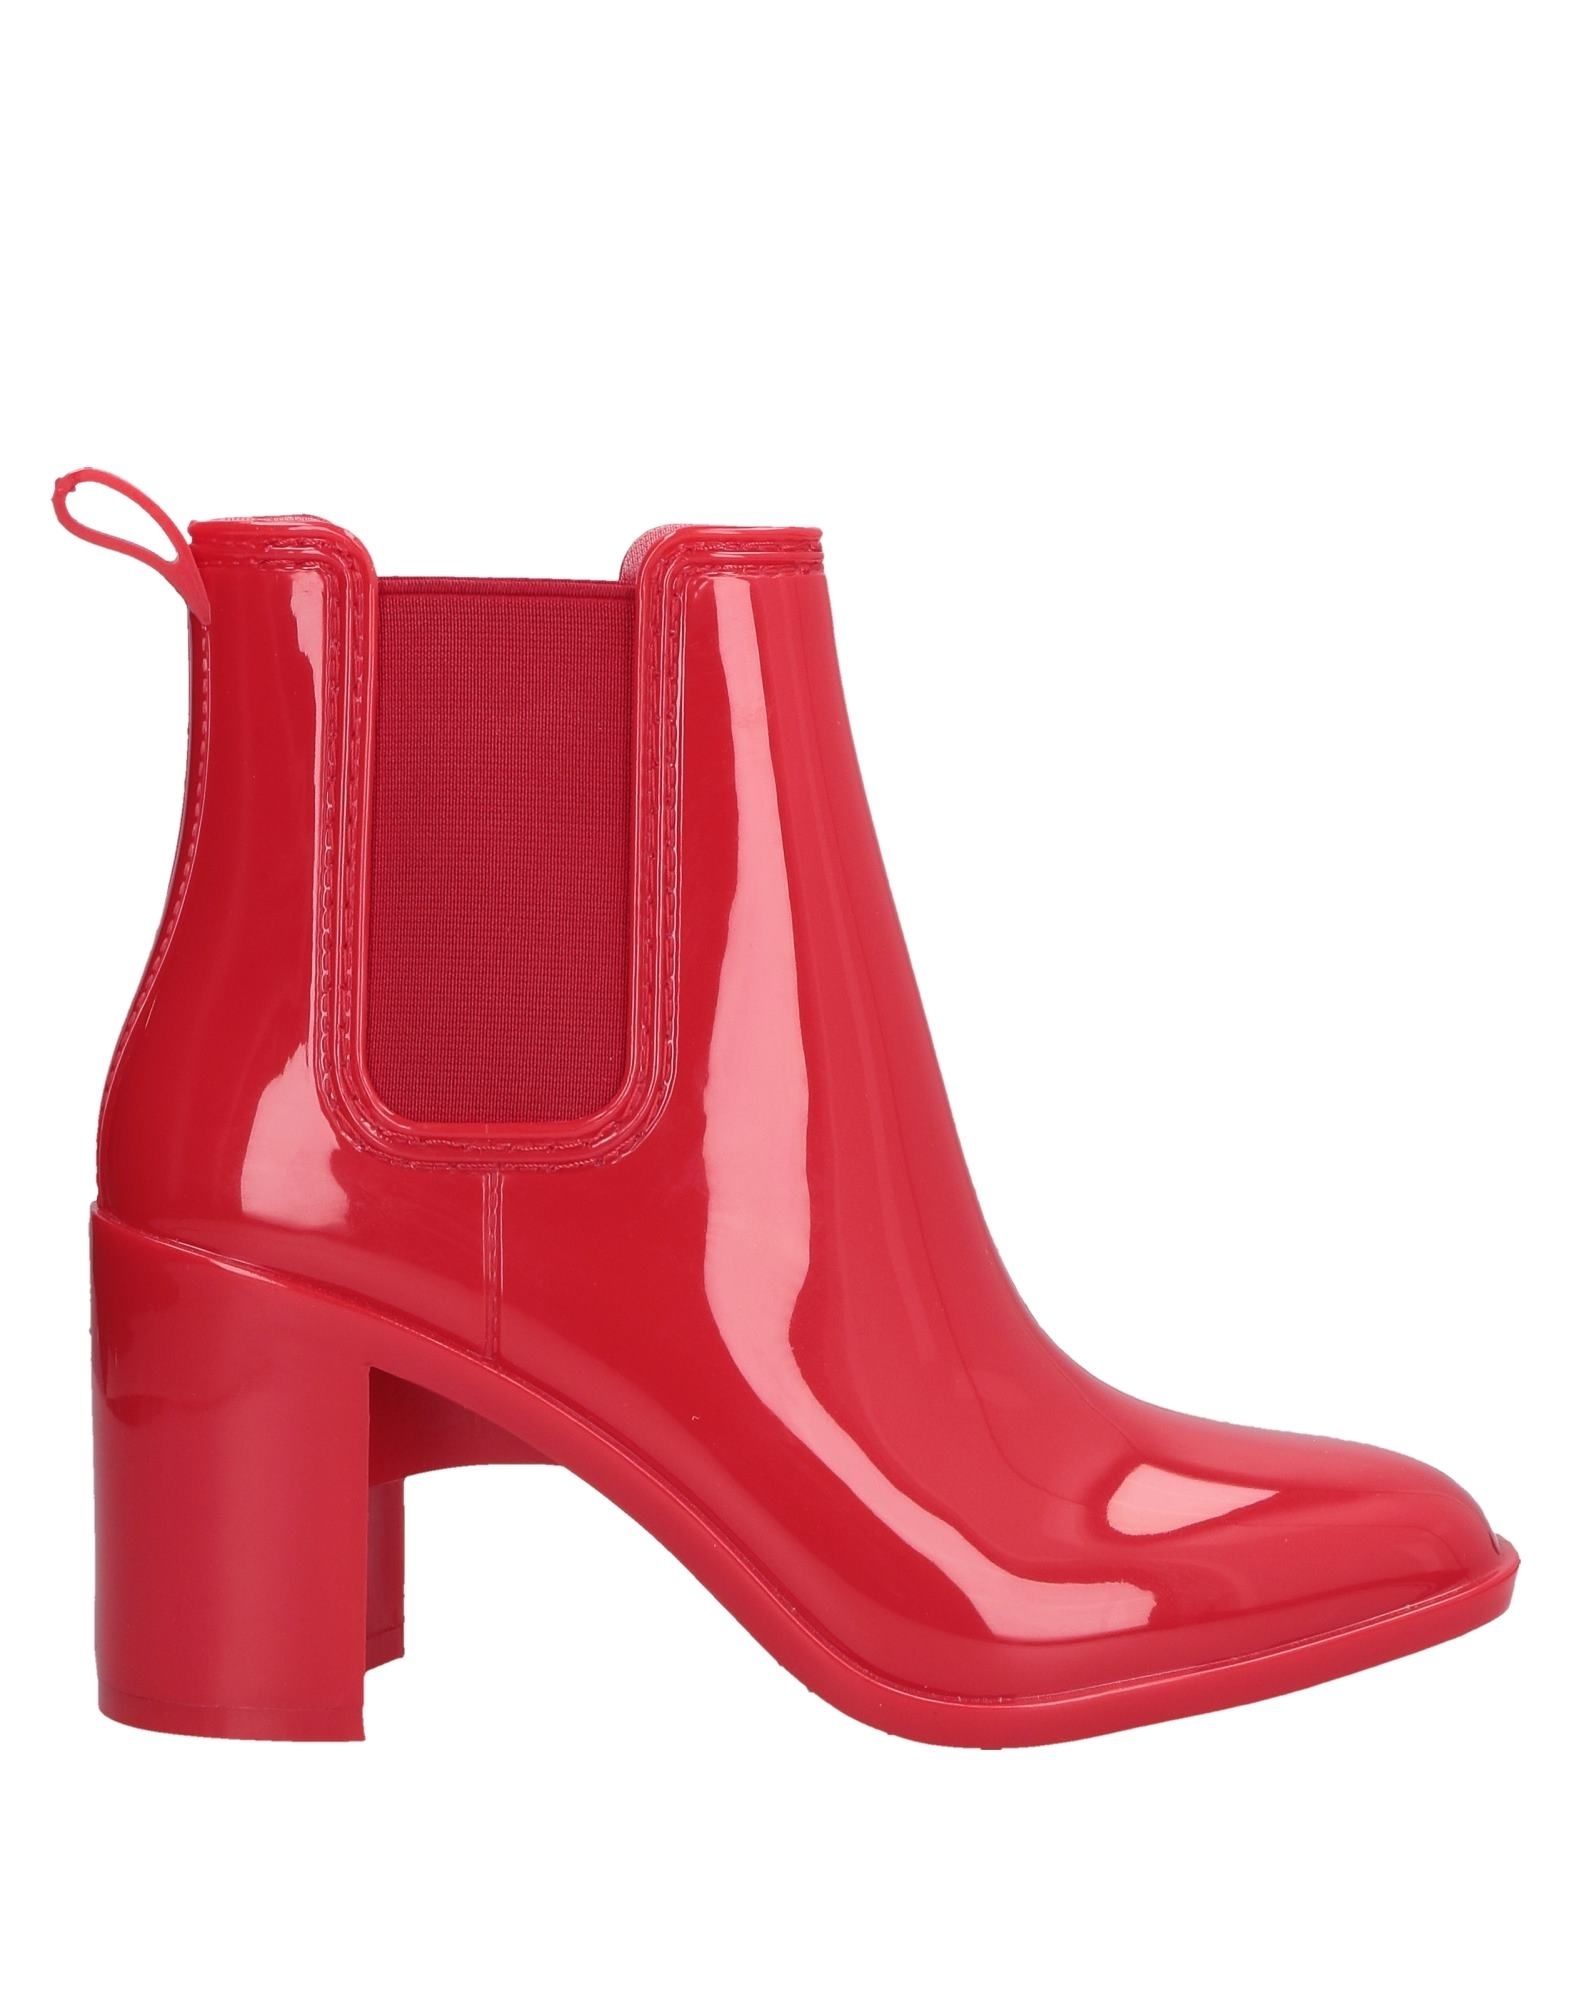 Jeffrey Campbell Jeffrey Ankle Boot - Women Jeffrey Campbell Campbell Ankle Boots online on  Australia - 11567556NW 968927